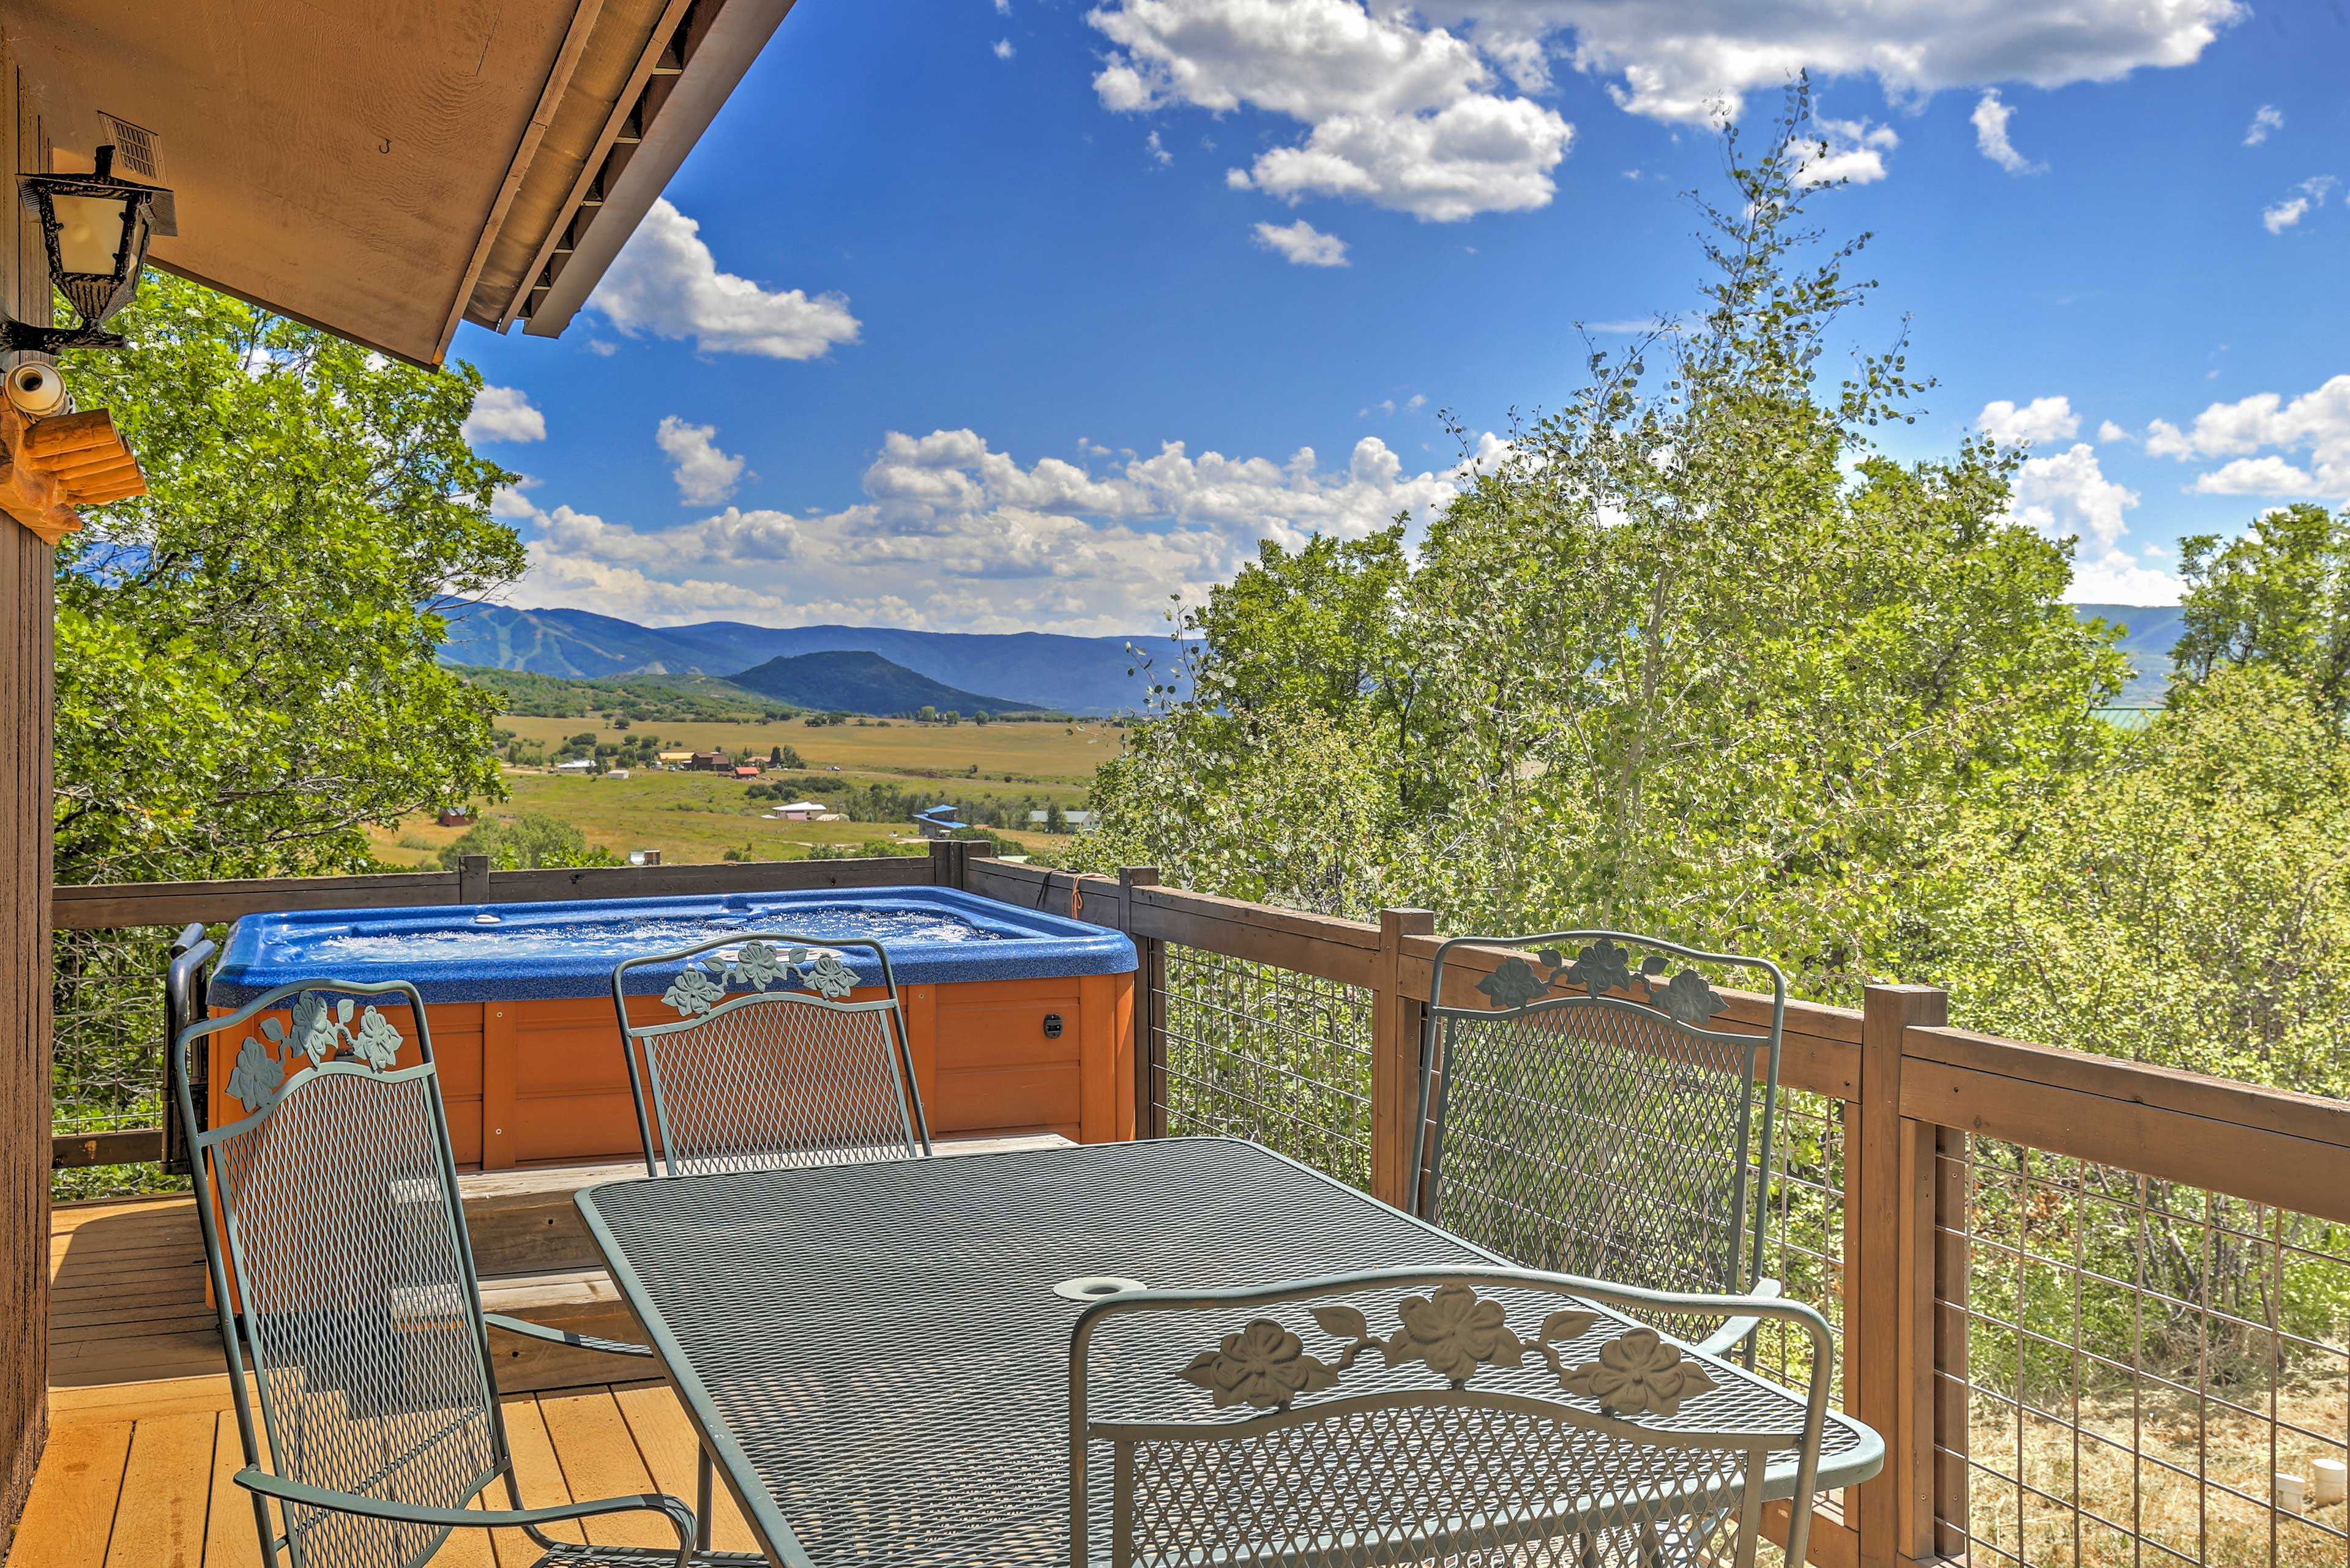 With 300 days of sunshine, Colorado ensures plenty of time outdoors!